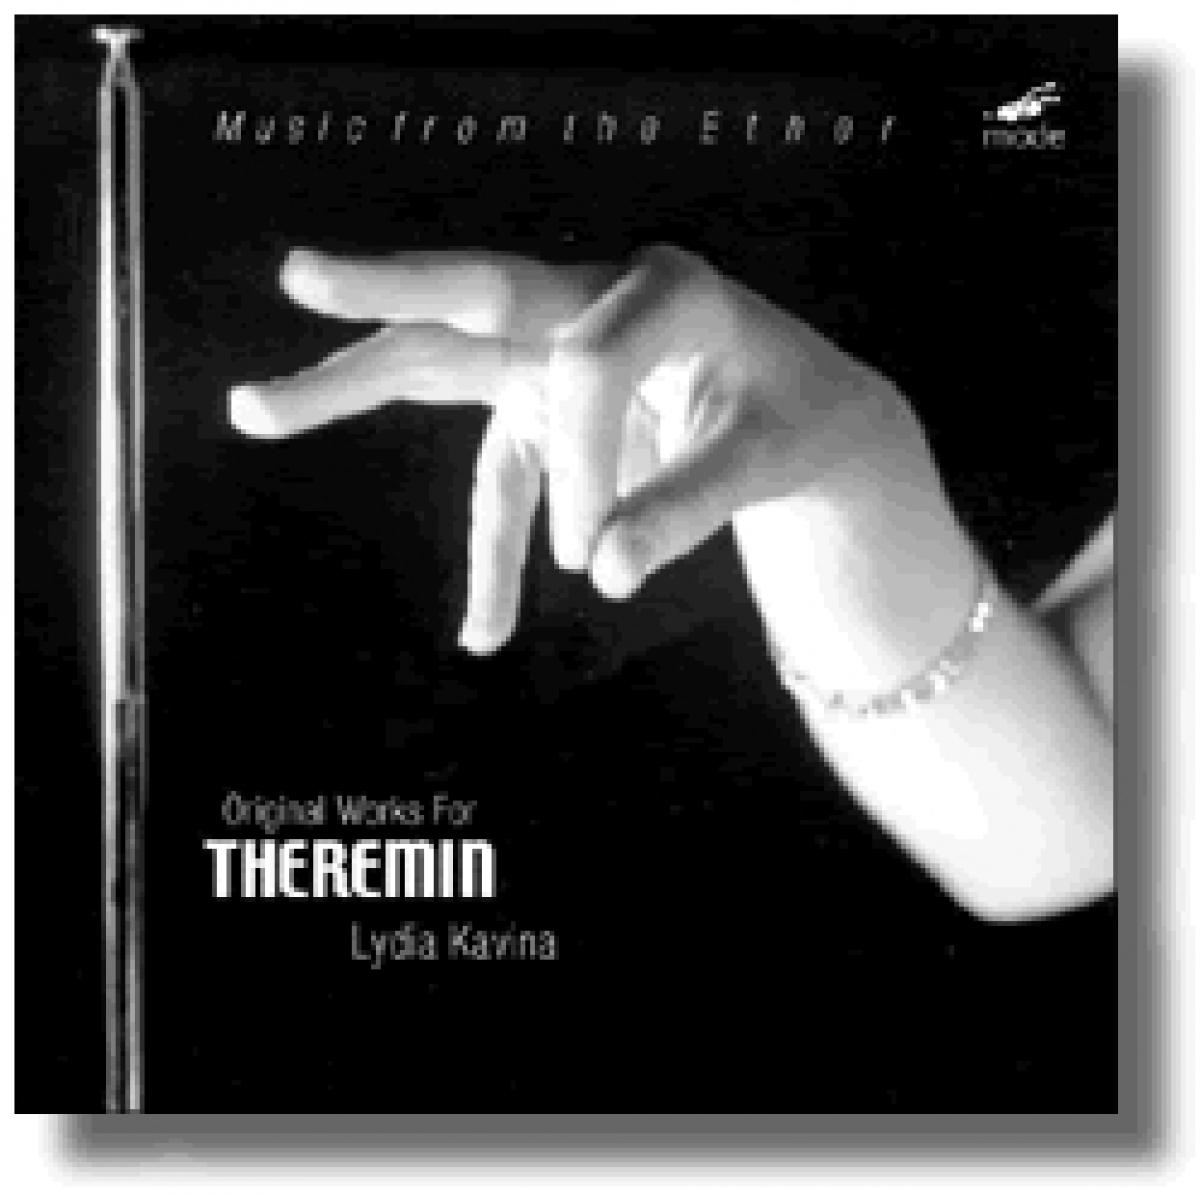 Lydia Kavina - Music from the Ether: Original Works for Theremin